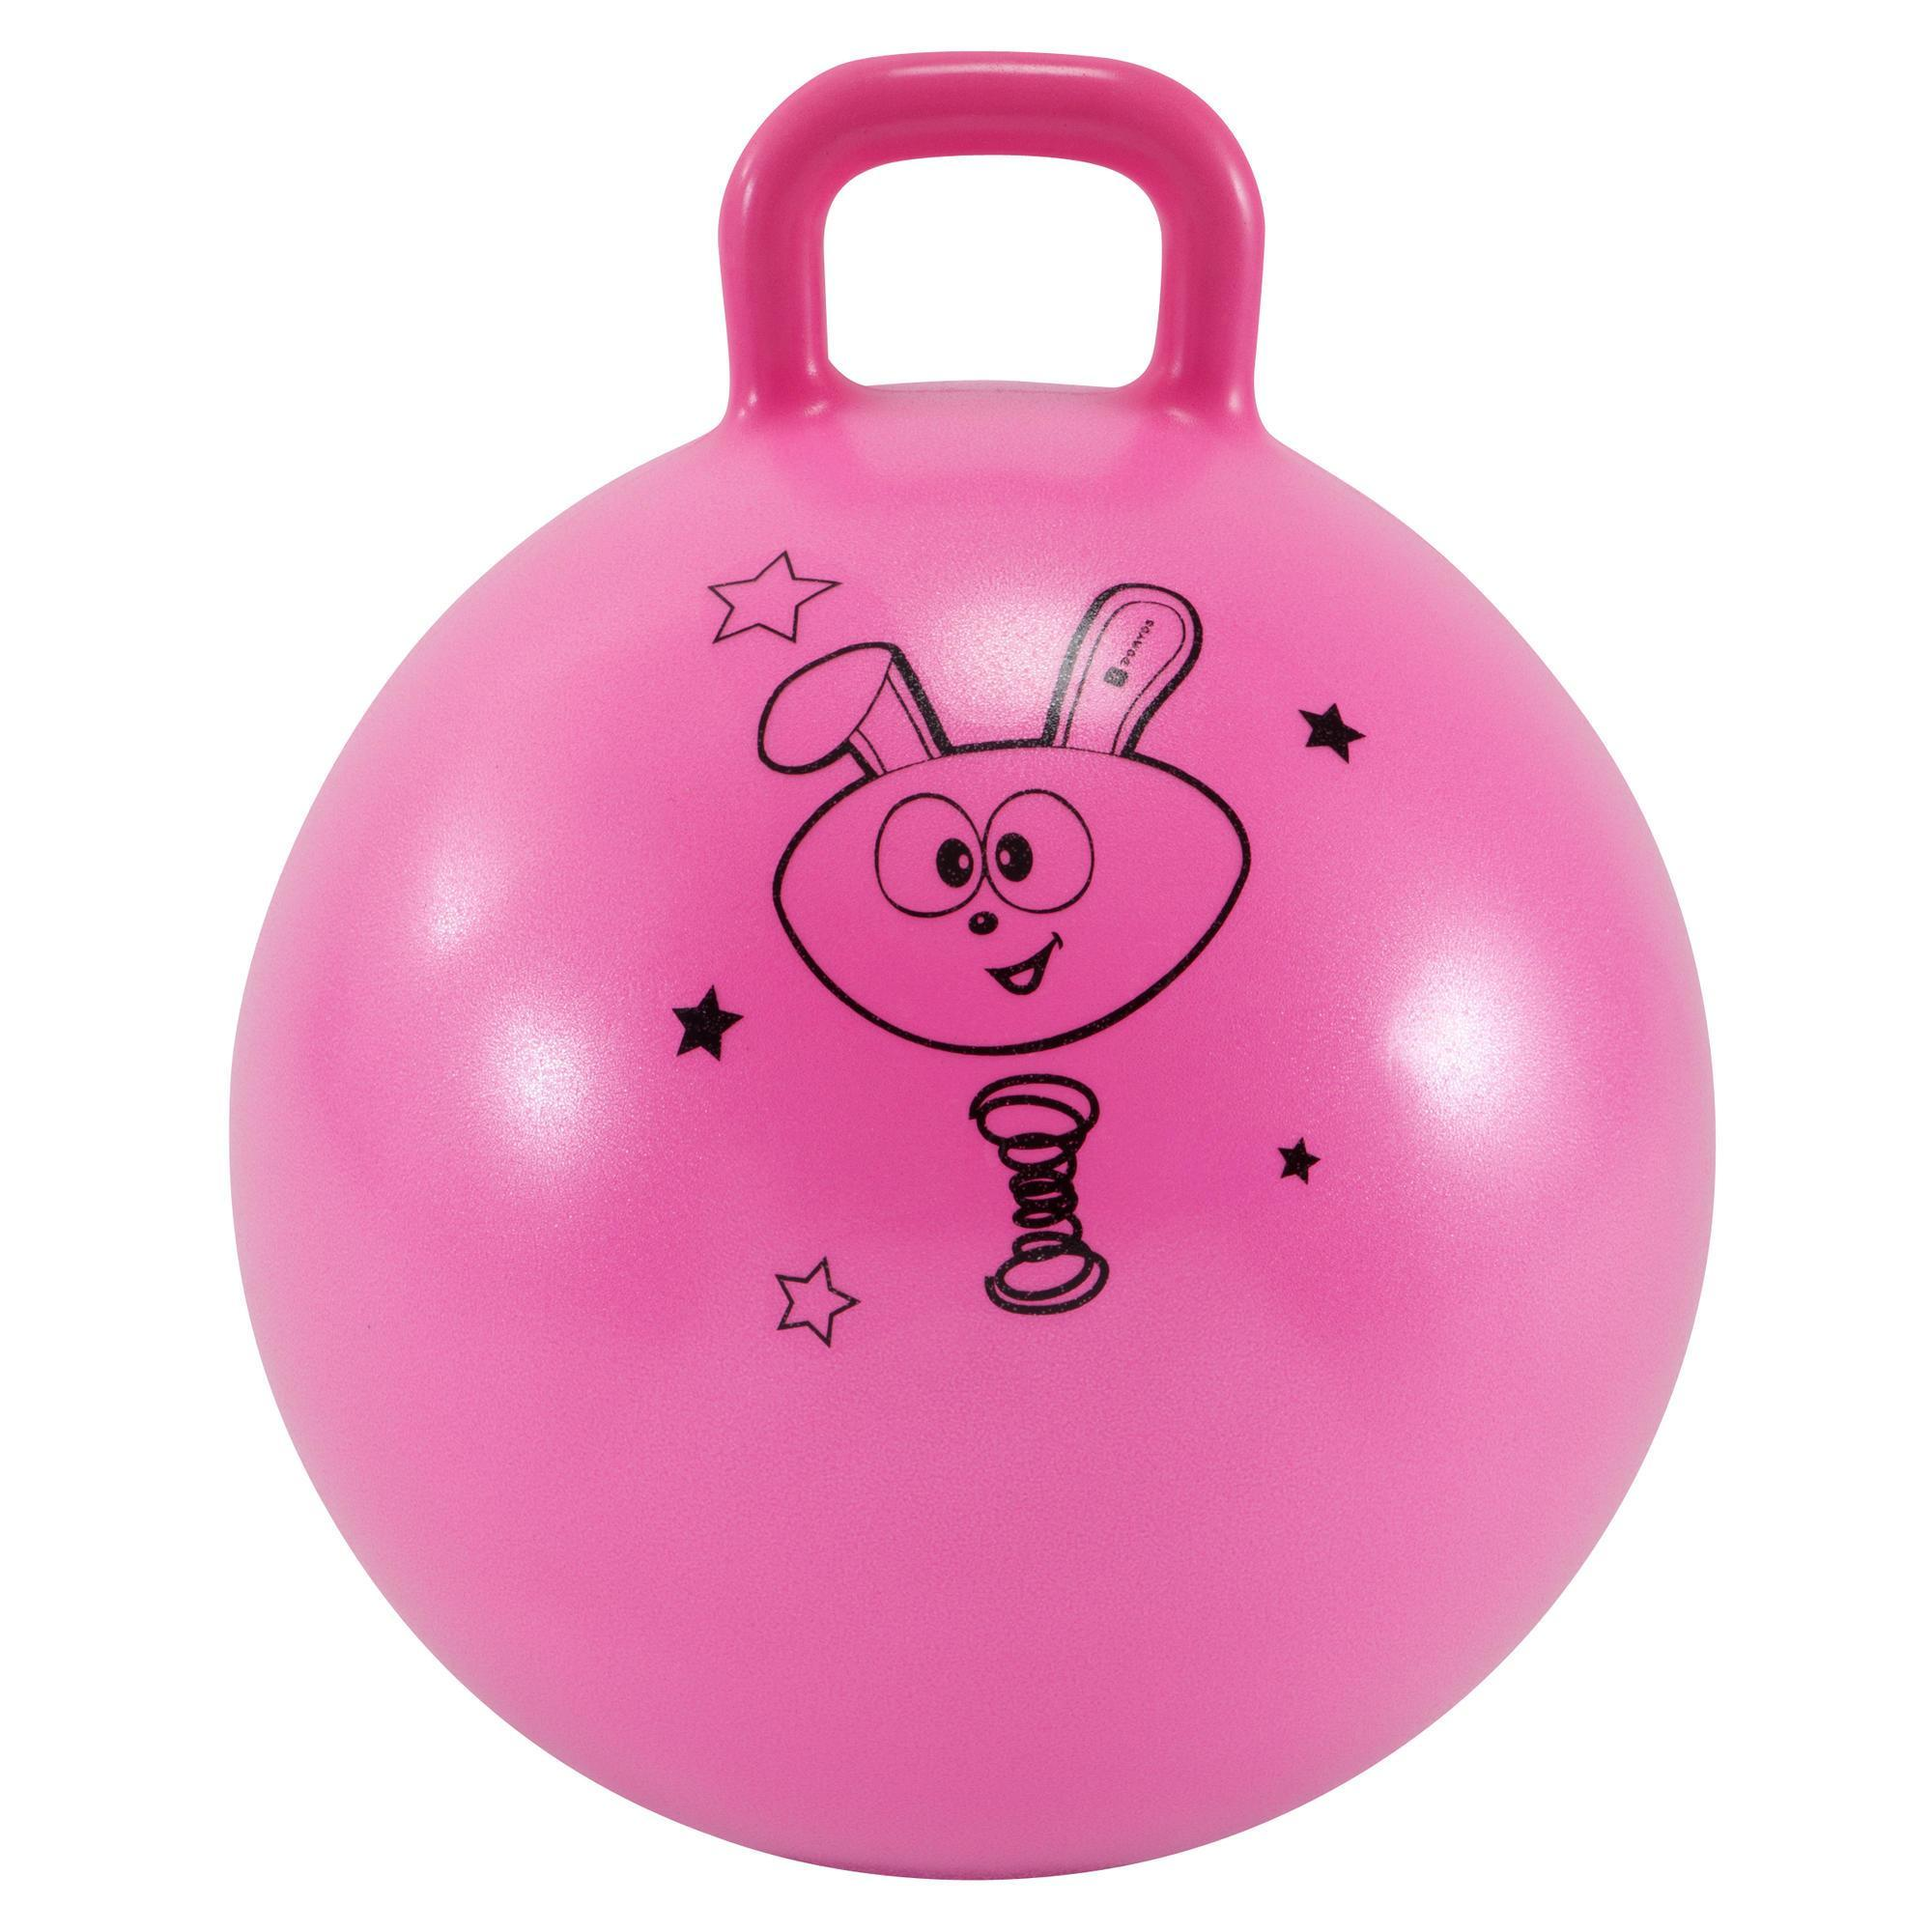 ballon sauteur resist 45 cm gym enfant rose domyos by decathlon. Black Bedroom Furniture Sets. Home Design Ideas